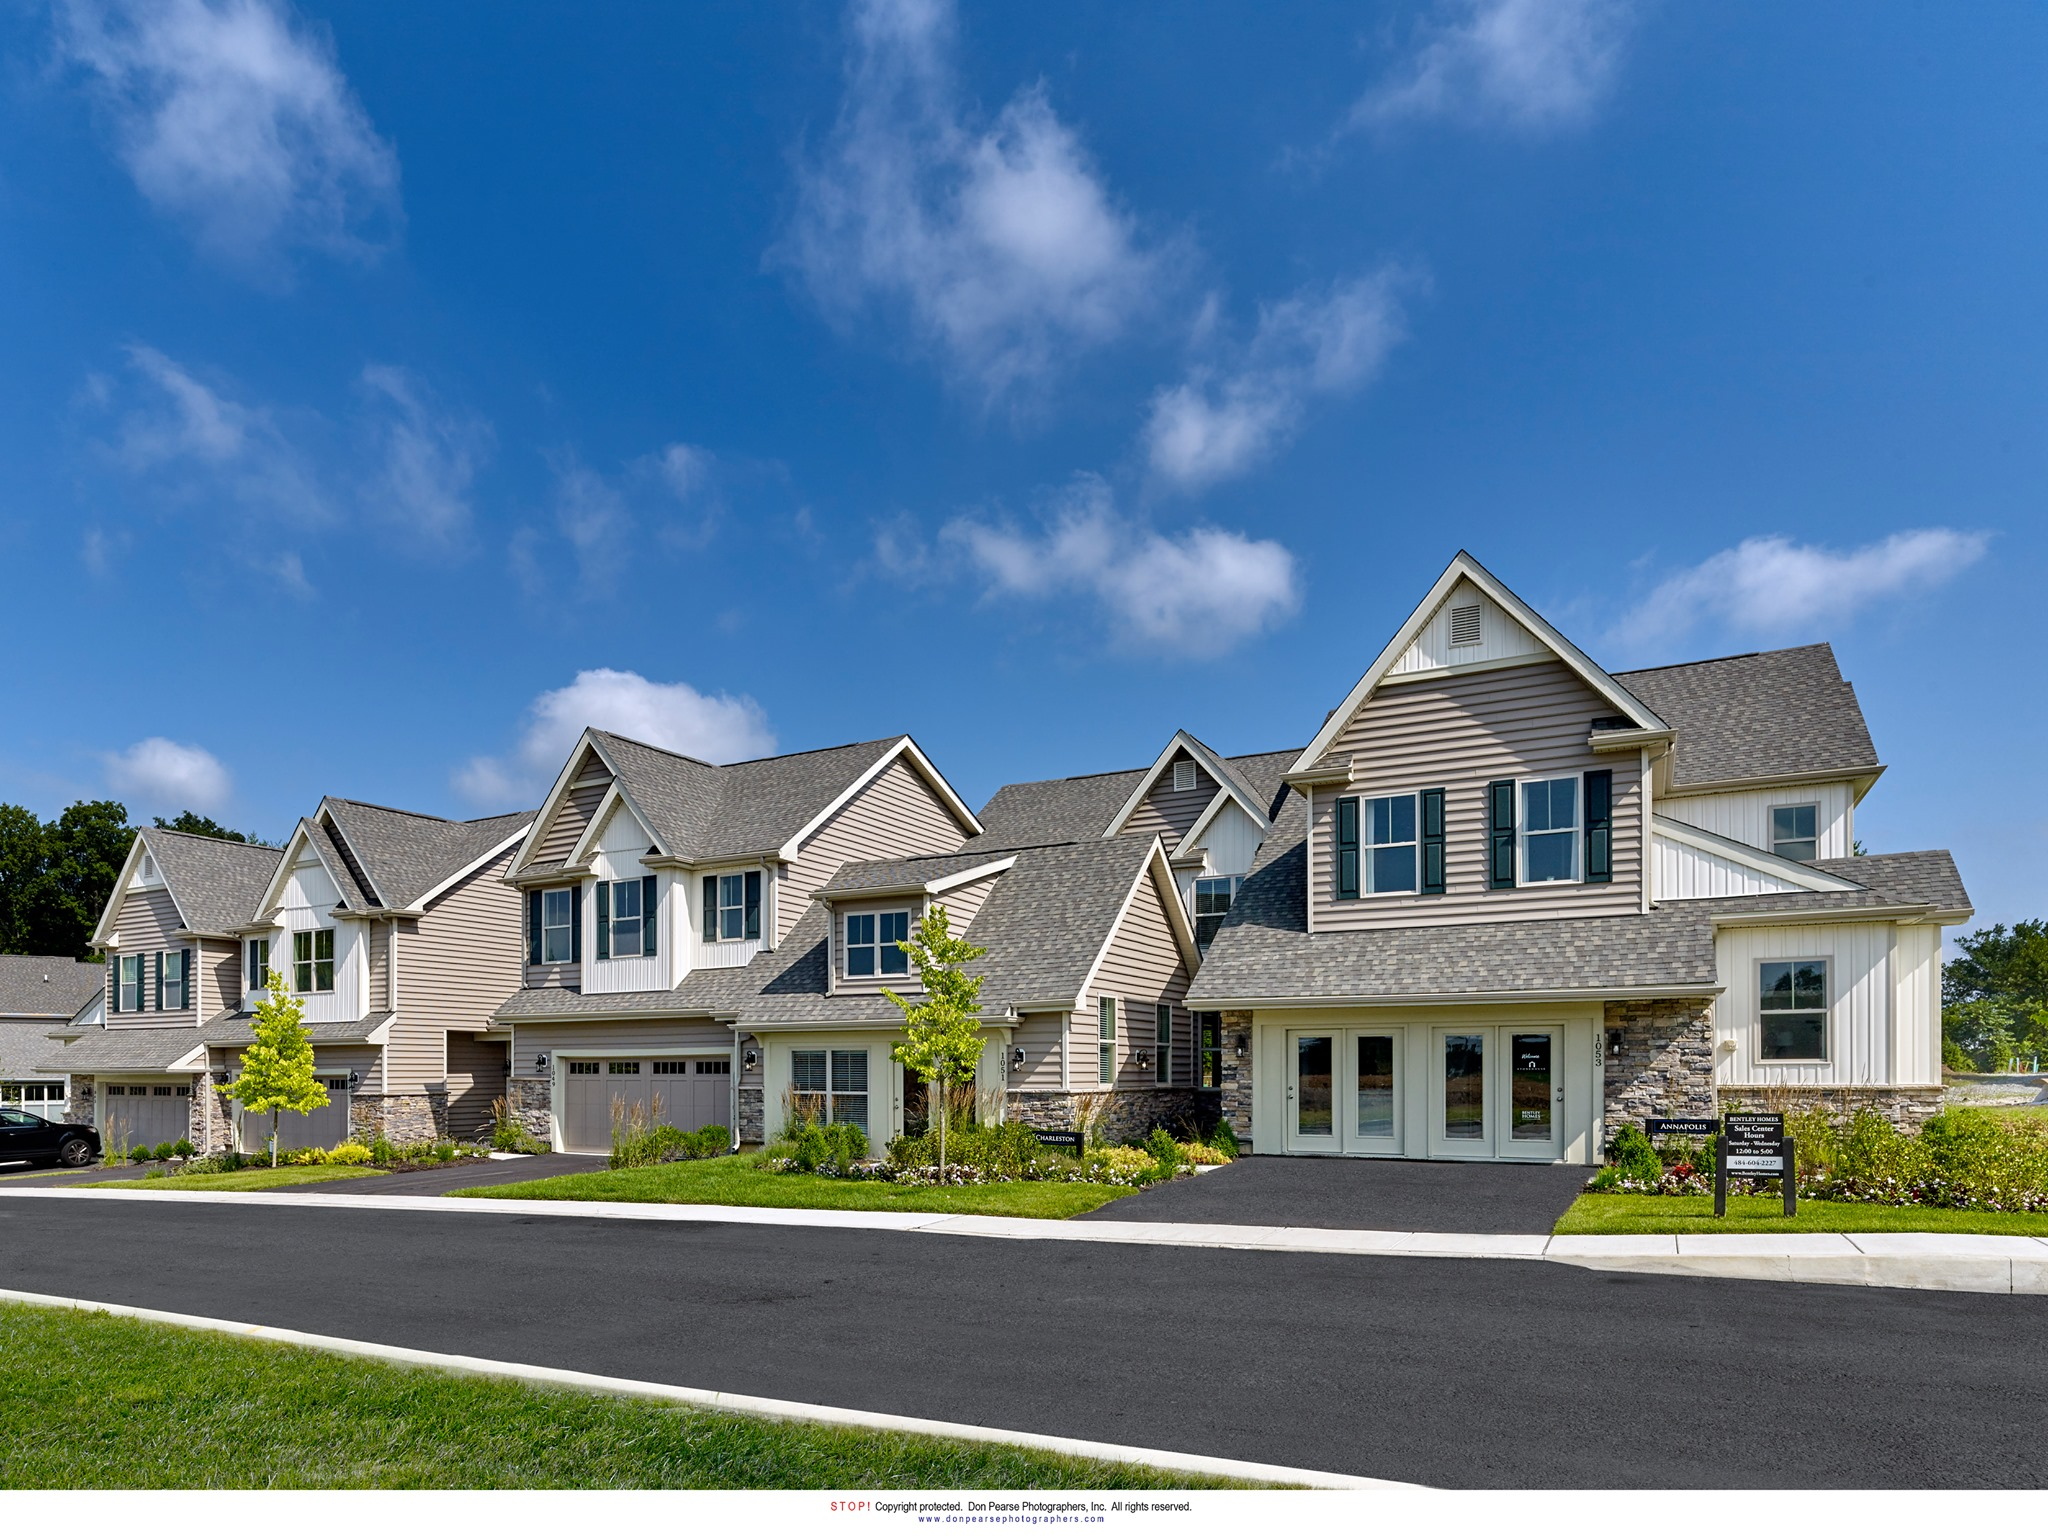 Bentley Homes Returns to the Main Line With Land Buy From Valley Forge Military Foundation